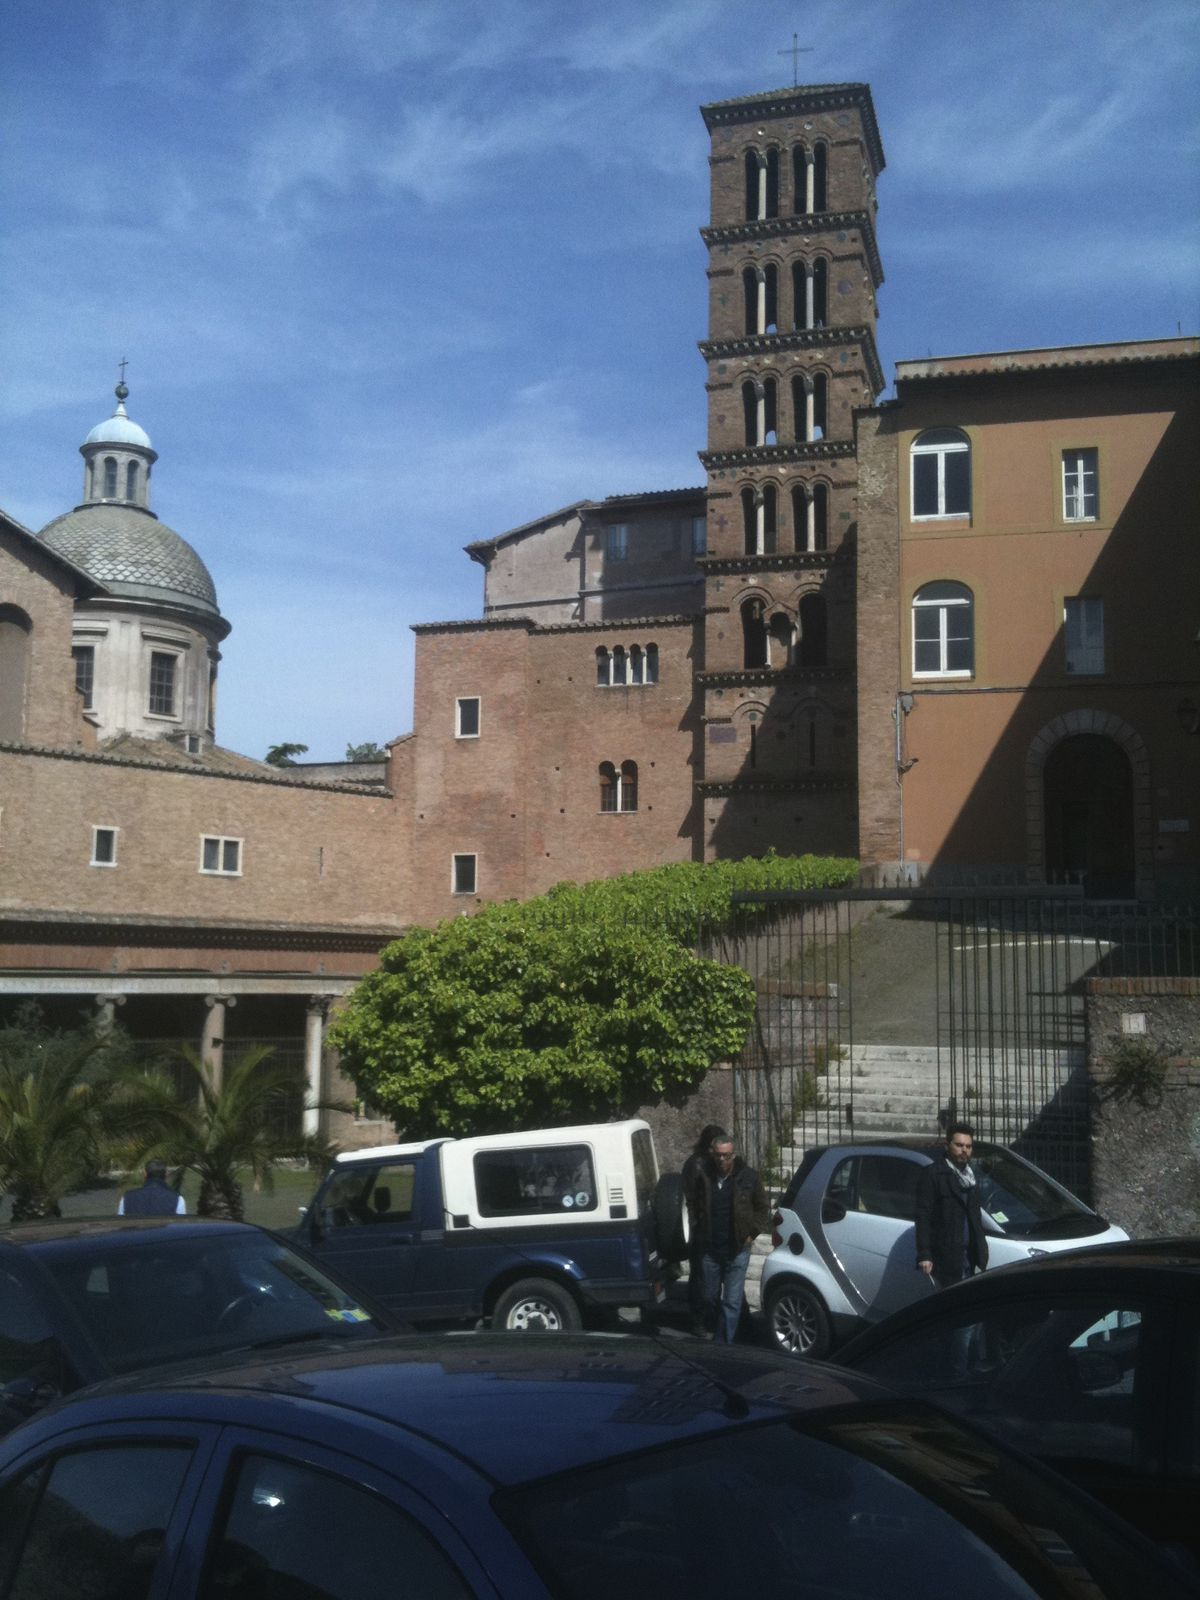 The monastery in Rome where the Rev. John Baptist Ormechea has been living ever since credible sex abuse allegations were made against him nearly 20 years ago dating from his time serving at Immaculate Conception parish on Chicago's Northwest Side.